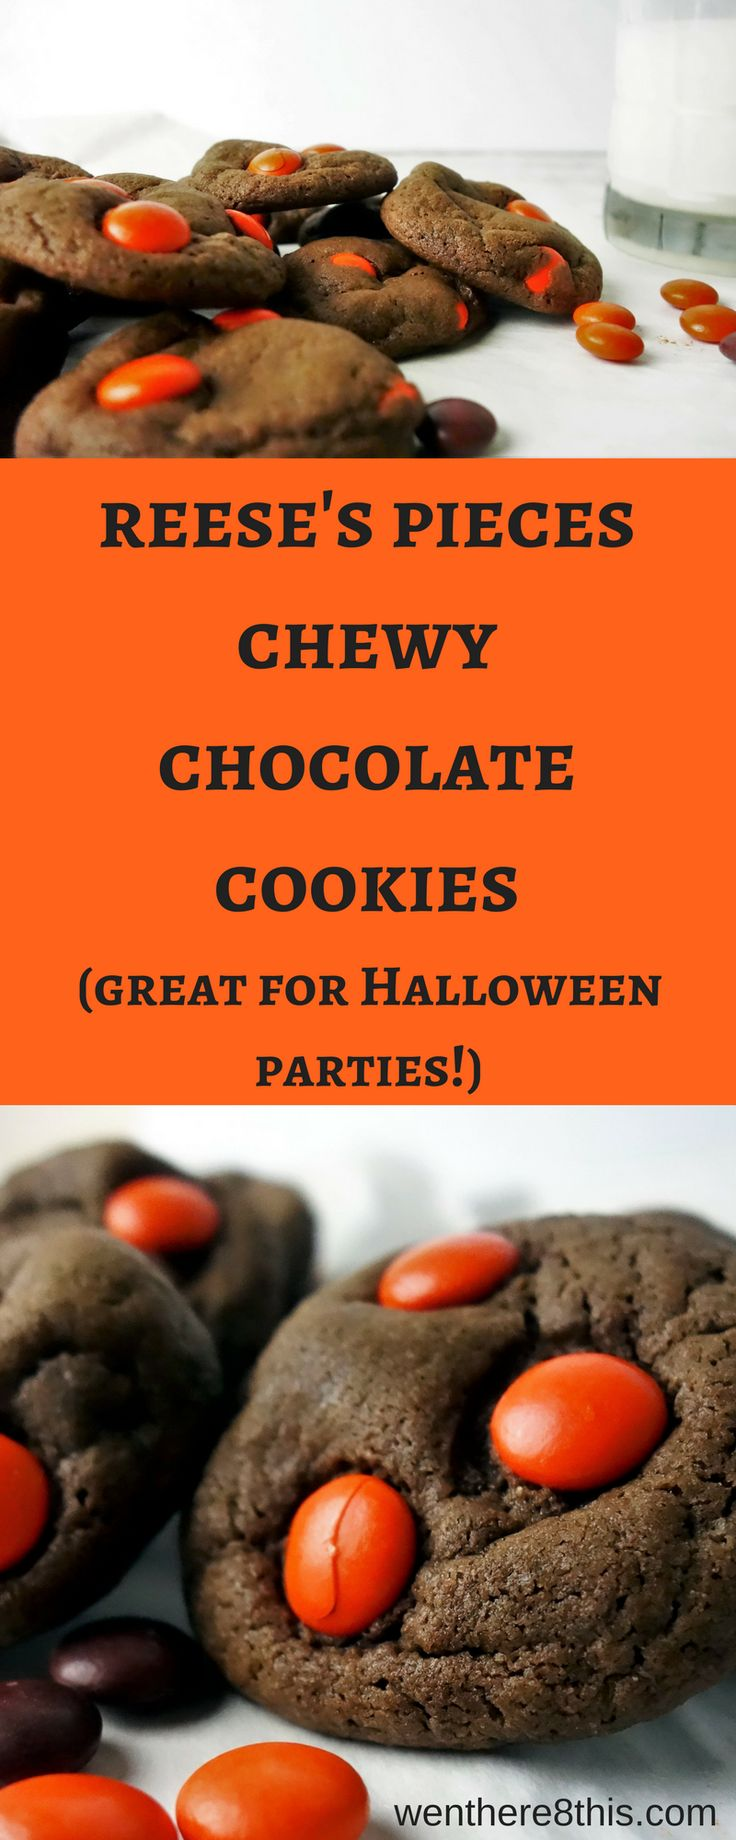 Halloween Themed Reese's Pieces Chewy Chocolate Cookies